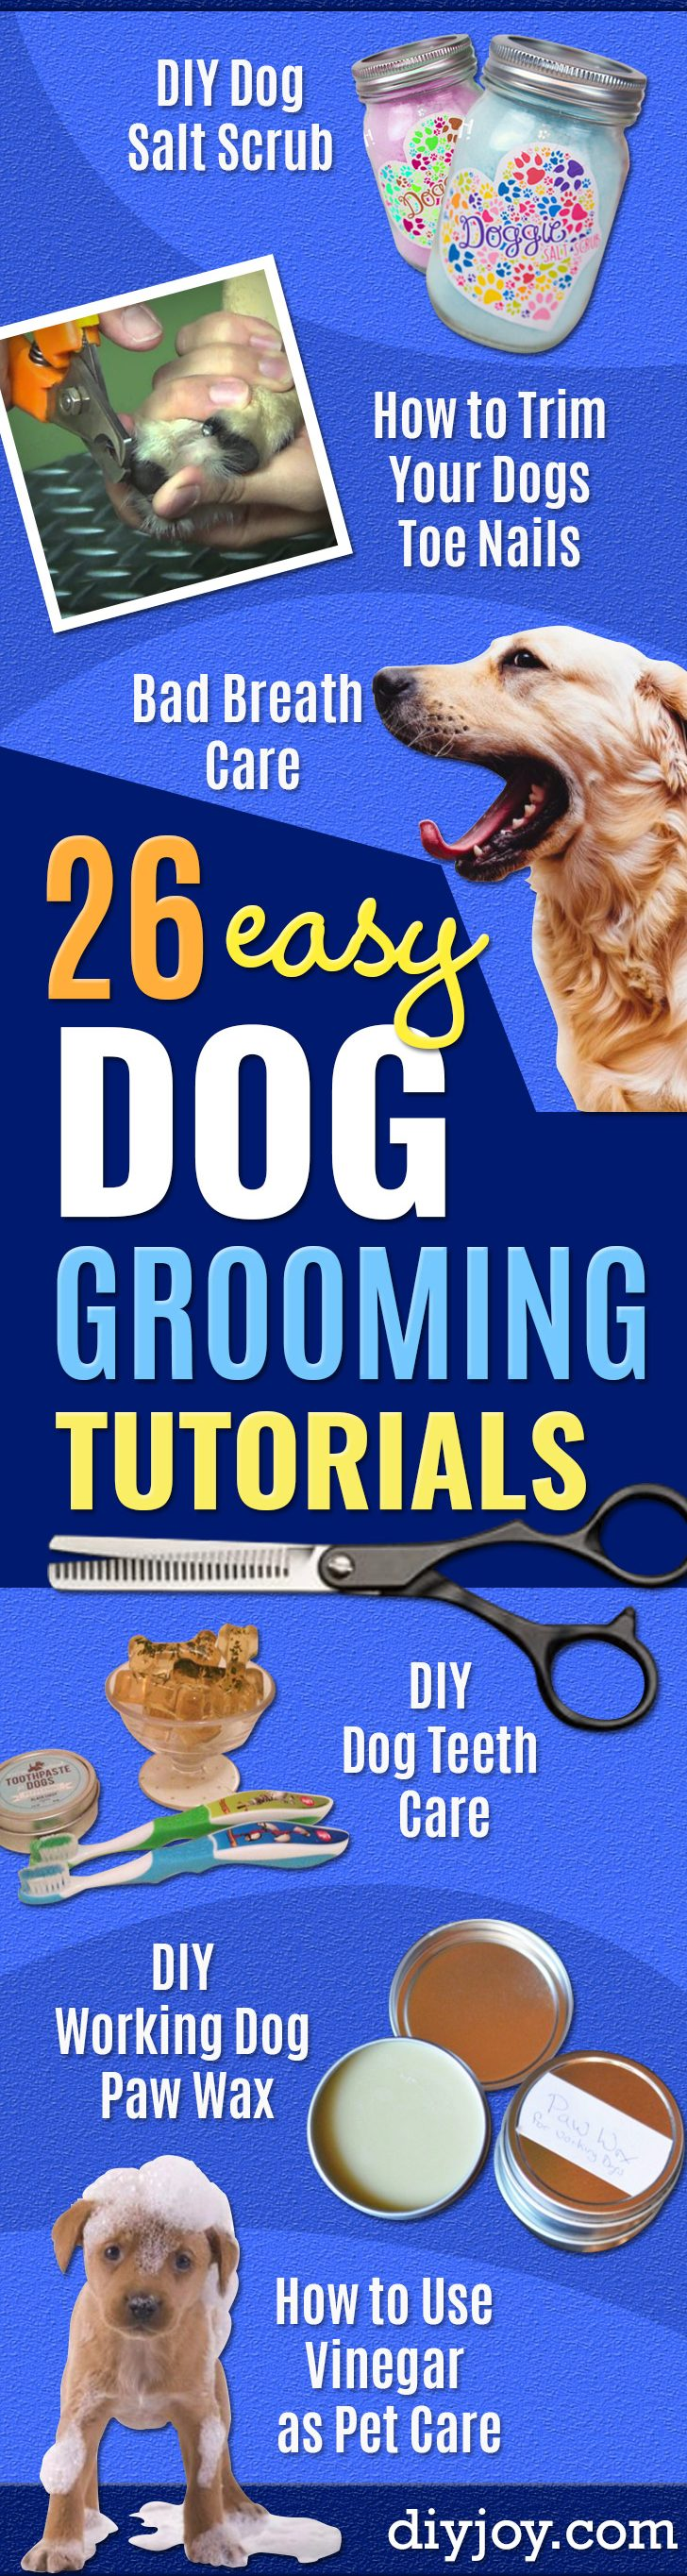 DIY Dog Grooming Tutorials - Cool and Easy Ways to Wash, Groom and Style Your Pets Fur - Trim Toenails, Brush Teeth, Bath, Trim and Clip Dogs Fur - Hair - Remove Fleas and Anti Itch - Save Money At The Groomer By Learning How To Do These Things At Home #diy #pets